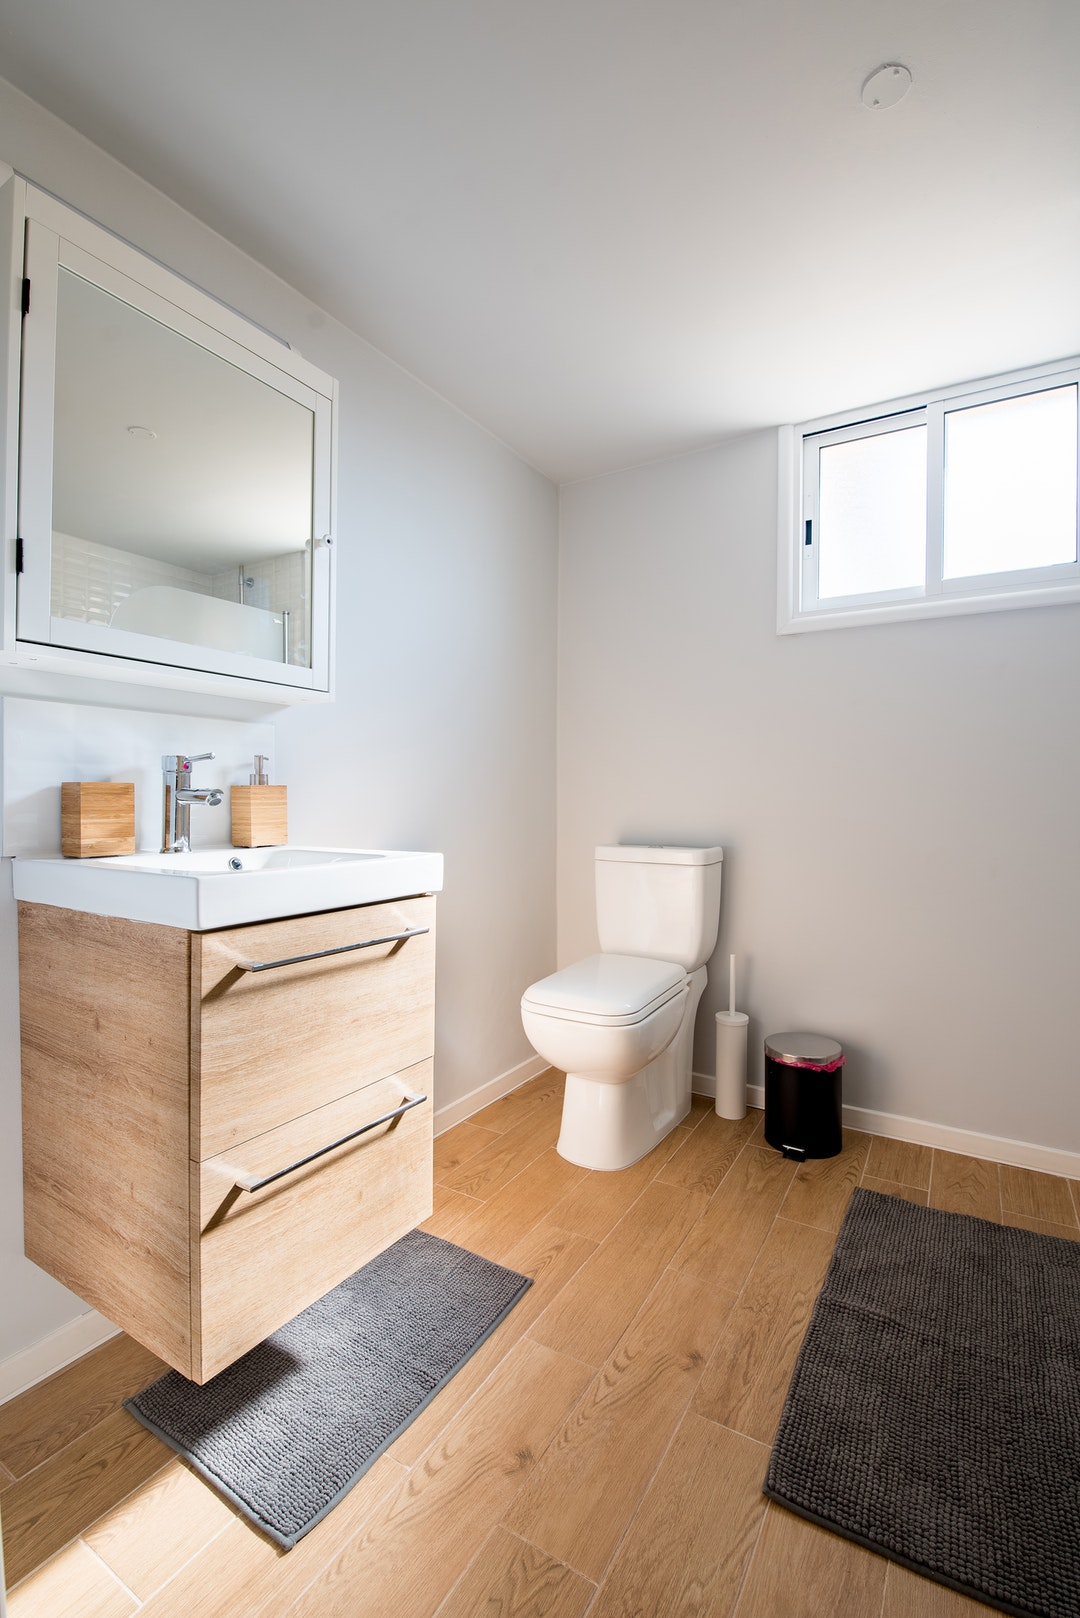 Small Bathroom Flooring Ideas: Your Best Options - Let's ... on Small Bathroom Ideas Pictures  id=73165